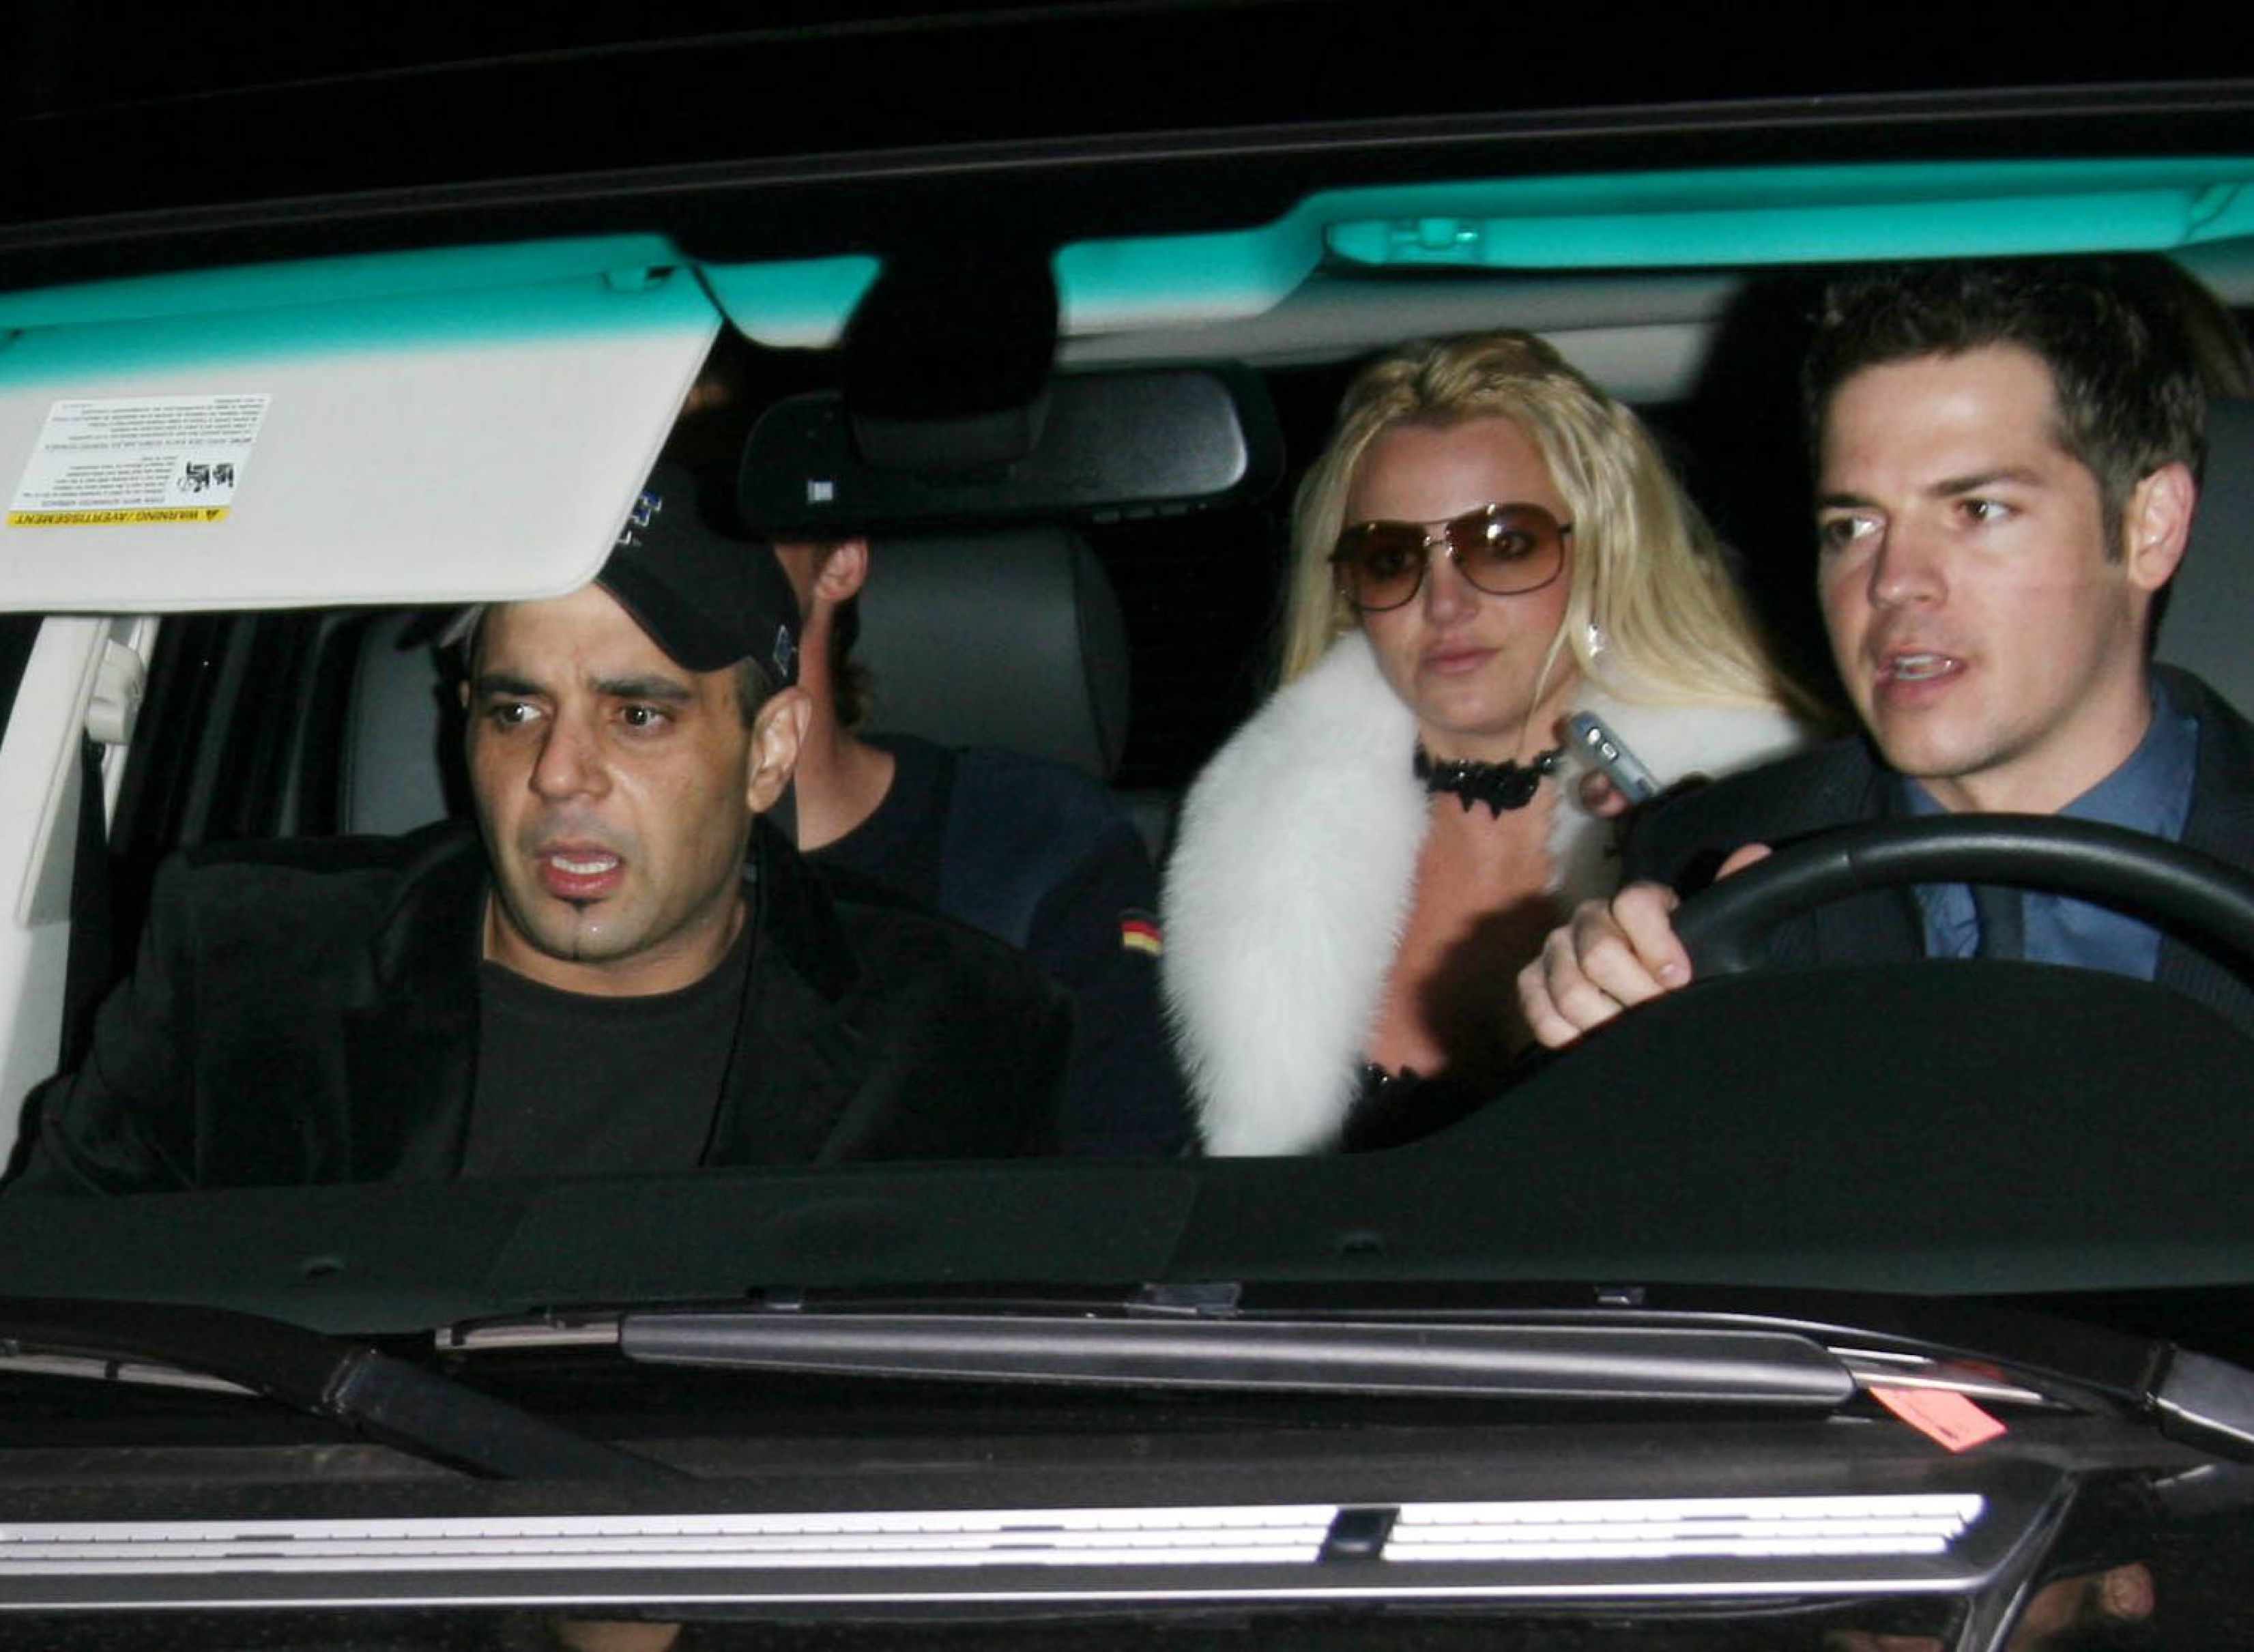 Sam Lutfi and Britney Spears arrive at Sharon Stone's Scandinavian Style Mansion Party in Los Angeles' Bel Air neighborhood on Dec. 1, 2007.